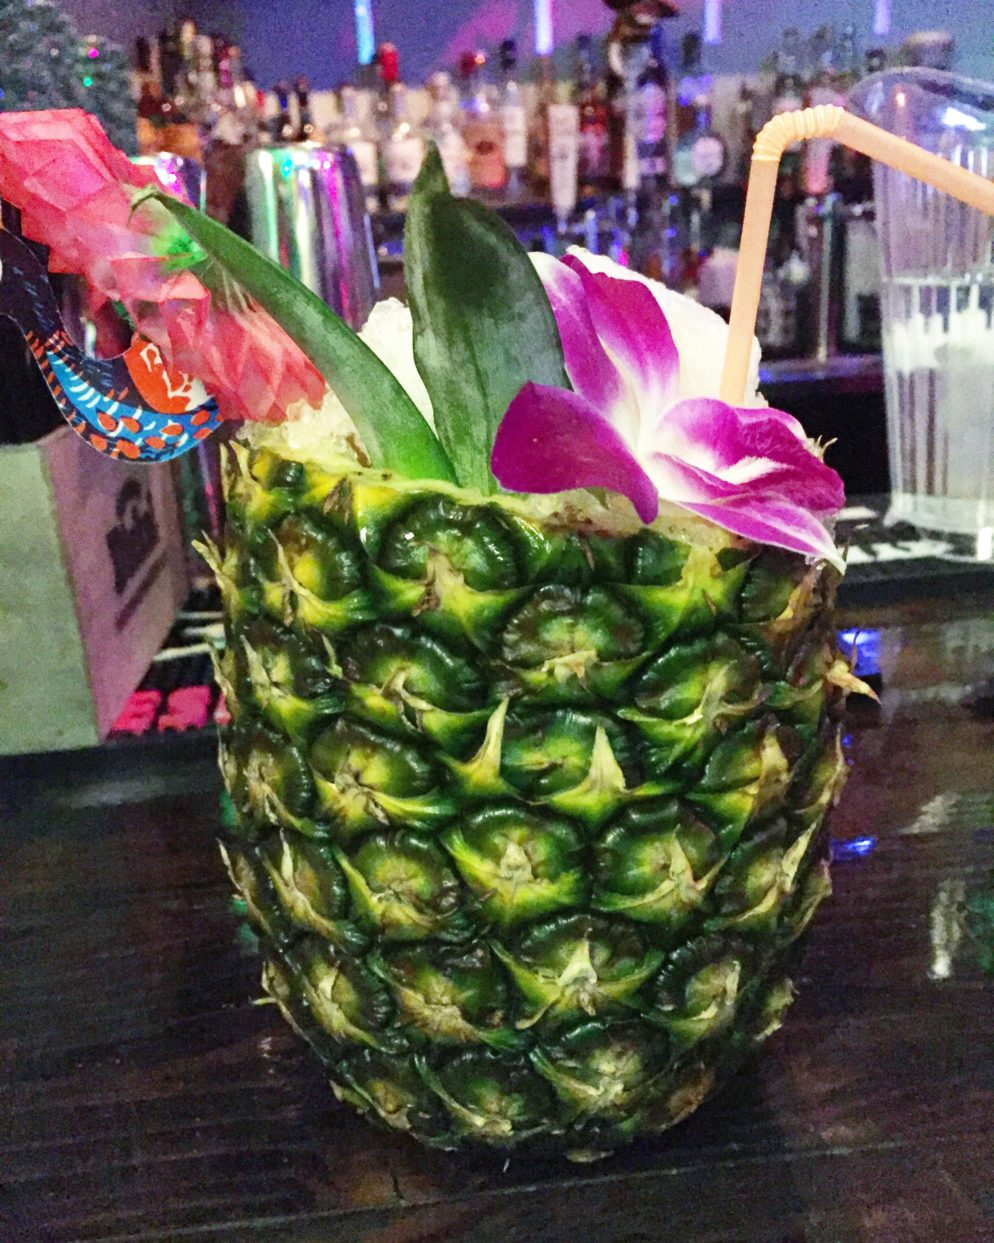 Tiki Bar Hogo Returns With Hawaiian Diner Food and Cocktails in Pineapples